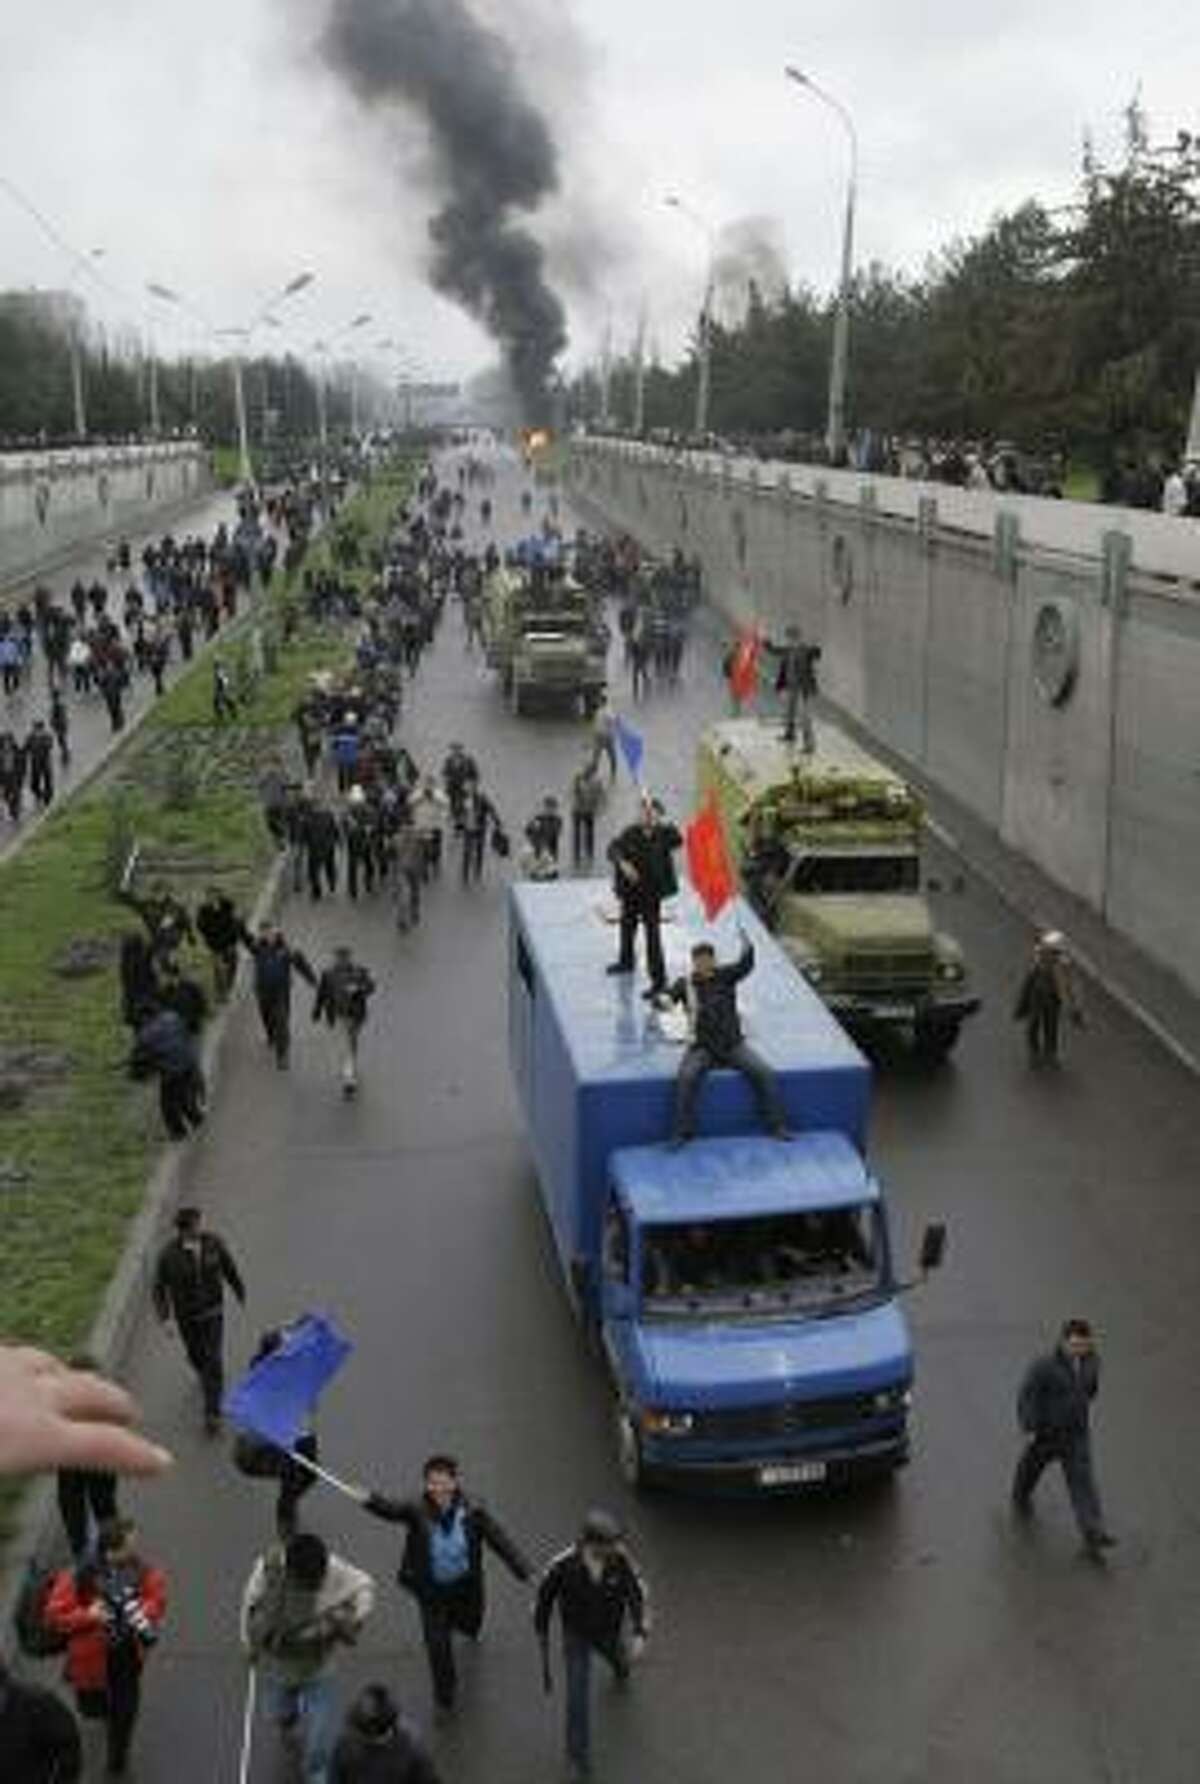 Kyrgyz protesters waving the national flag, ride on a truck in Bishkek, Kyrgyzstan.